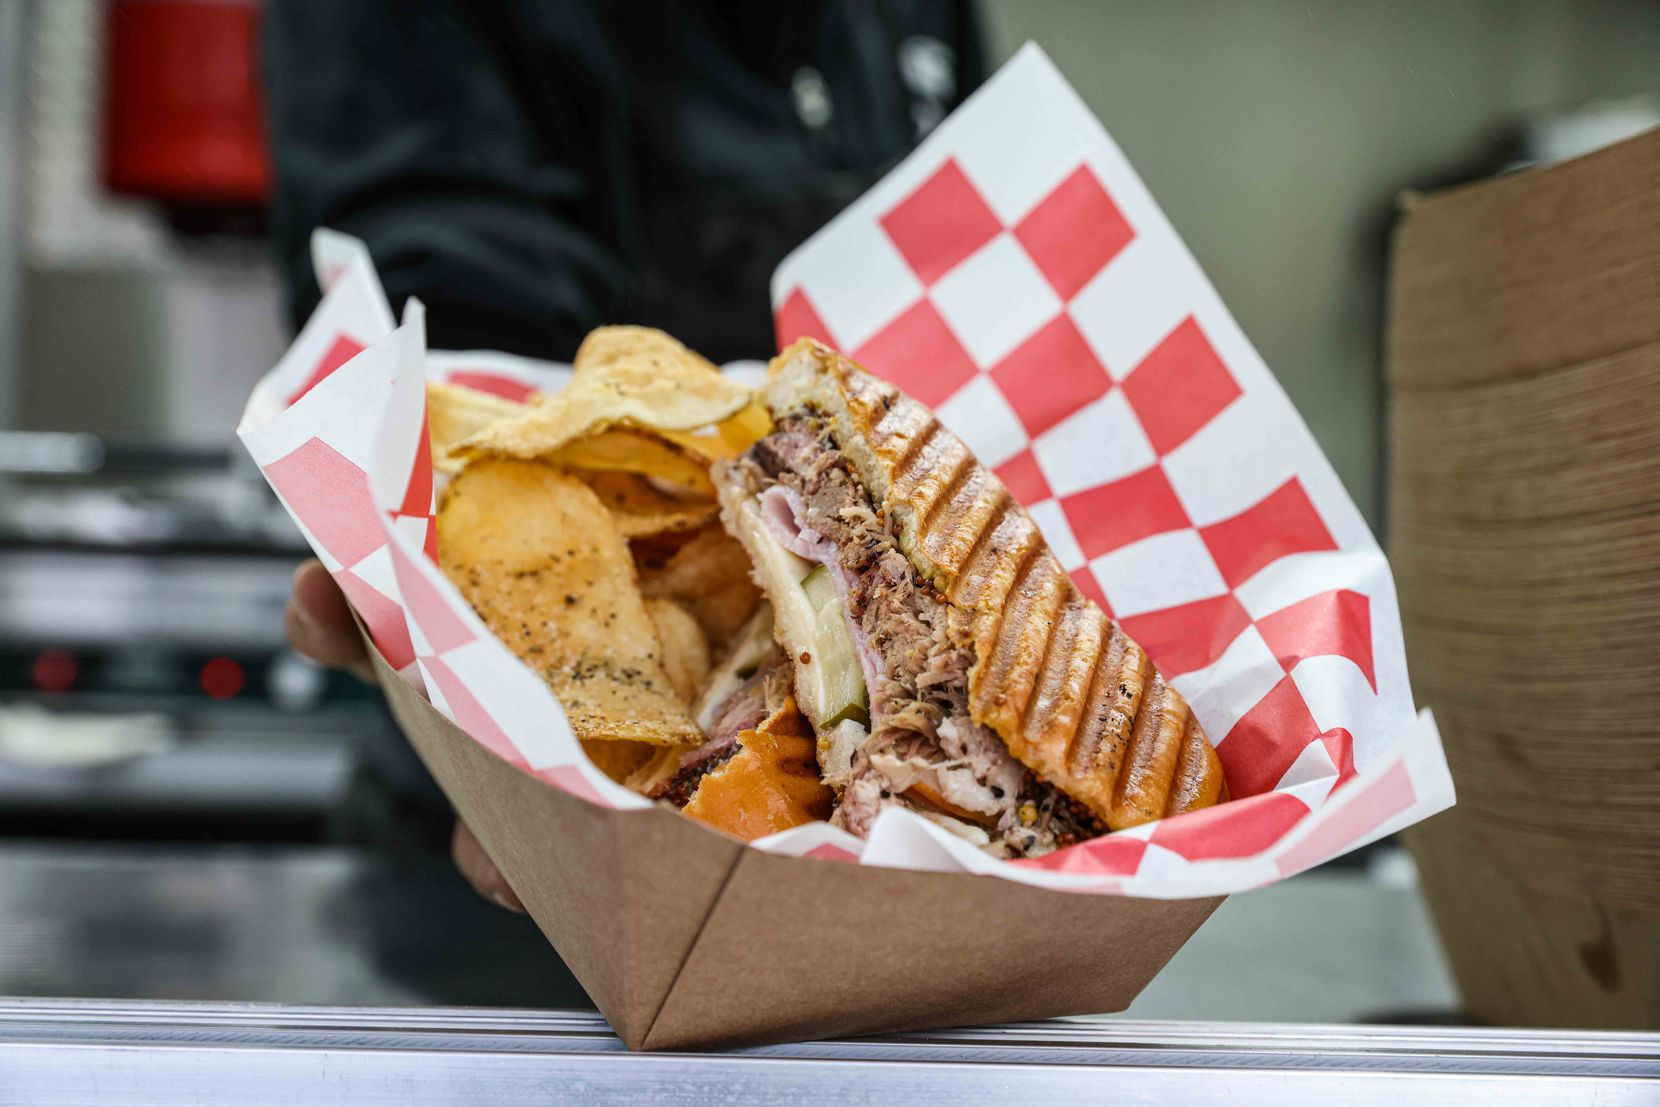 Chef Jordan Savell presents El Cubano, her signature cuban sandwich with smoked pork shoulder, ham, swiss cheese, chef J's pickles, horseradish mustard and cuban bread in her food truck Bullfish Foods in Fort Worth on Wednesday, March 24, 2021.